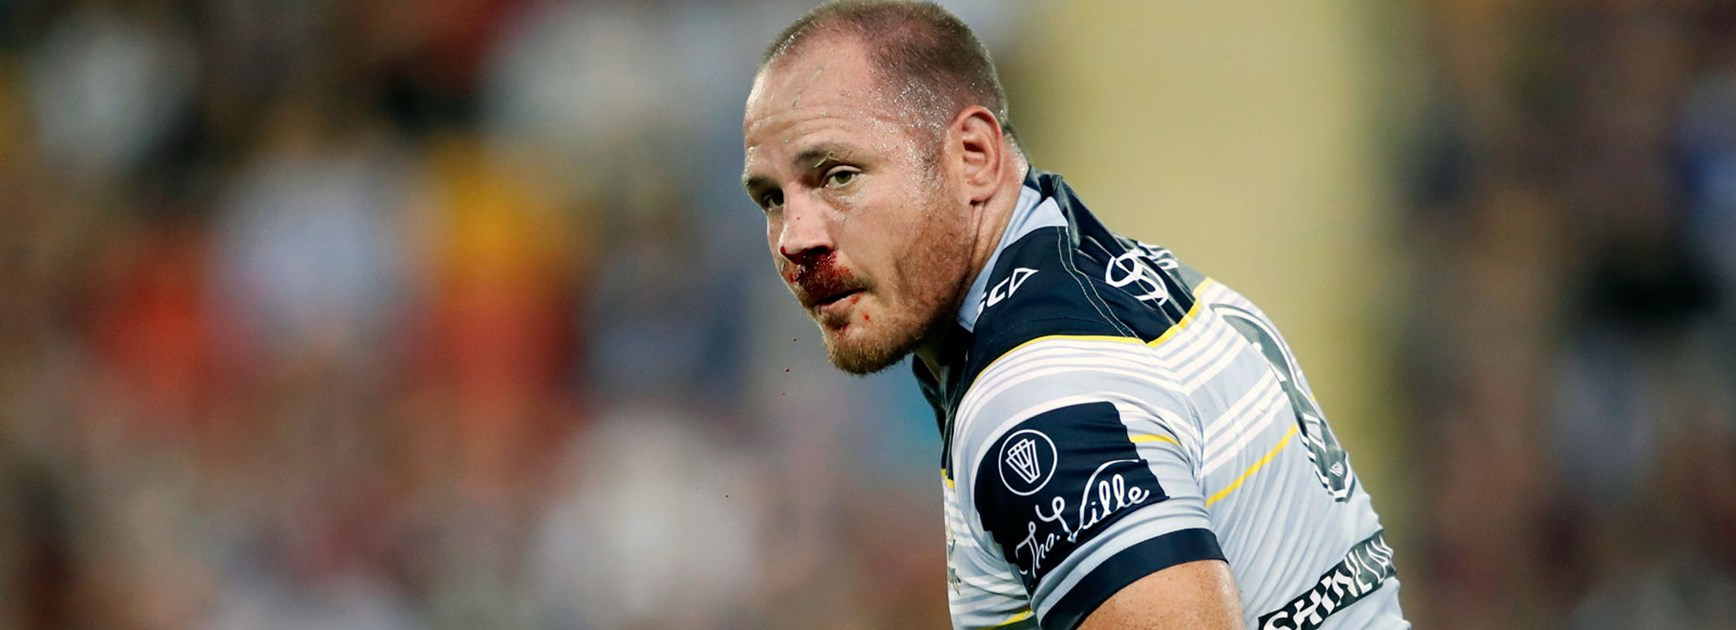 Cowboys co-captain Matt Scott was injured against the Broncos in Round 2.